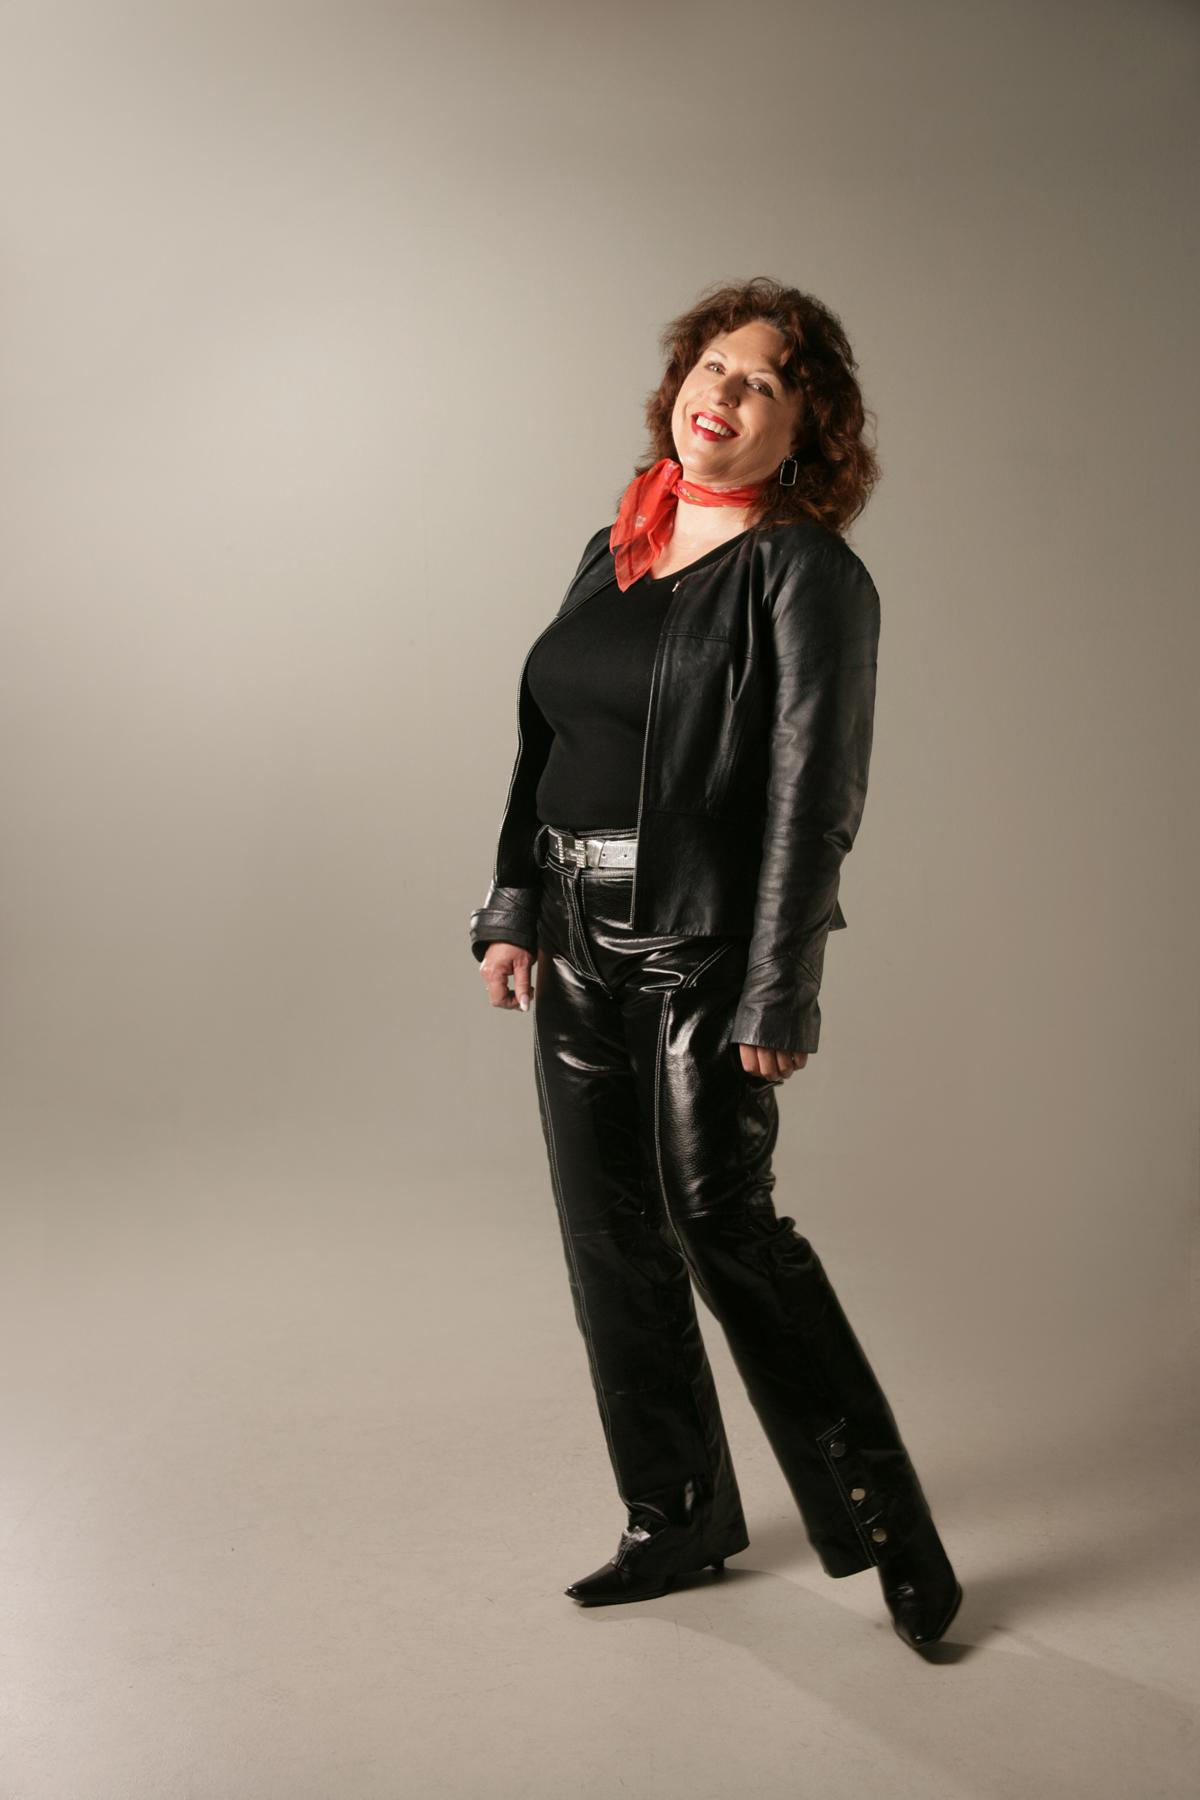 Love Those Black Patent Leather Jeans